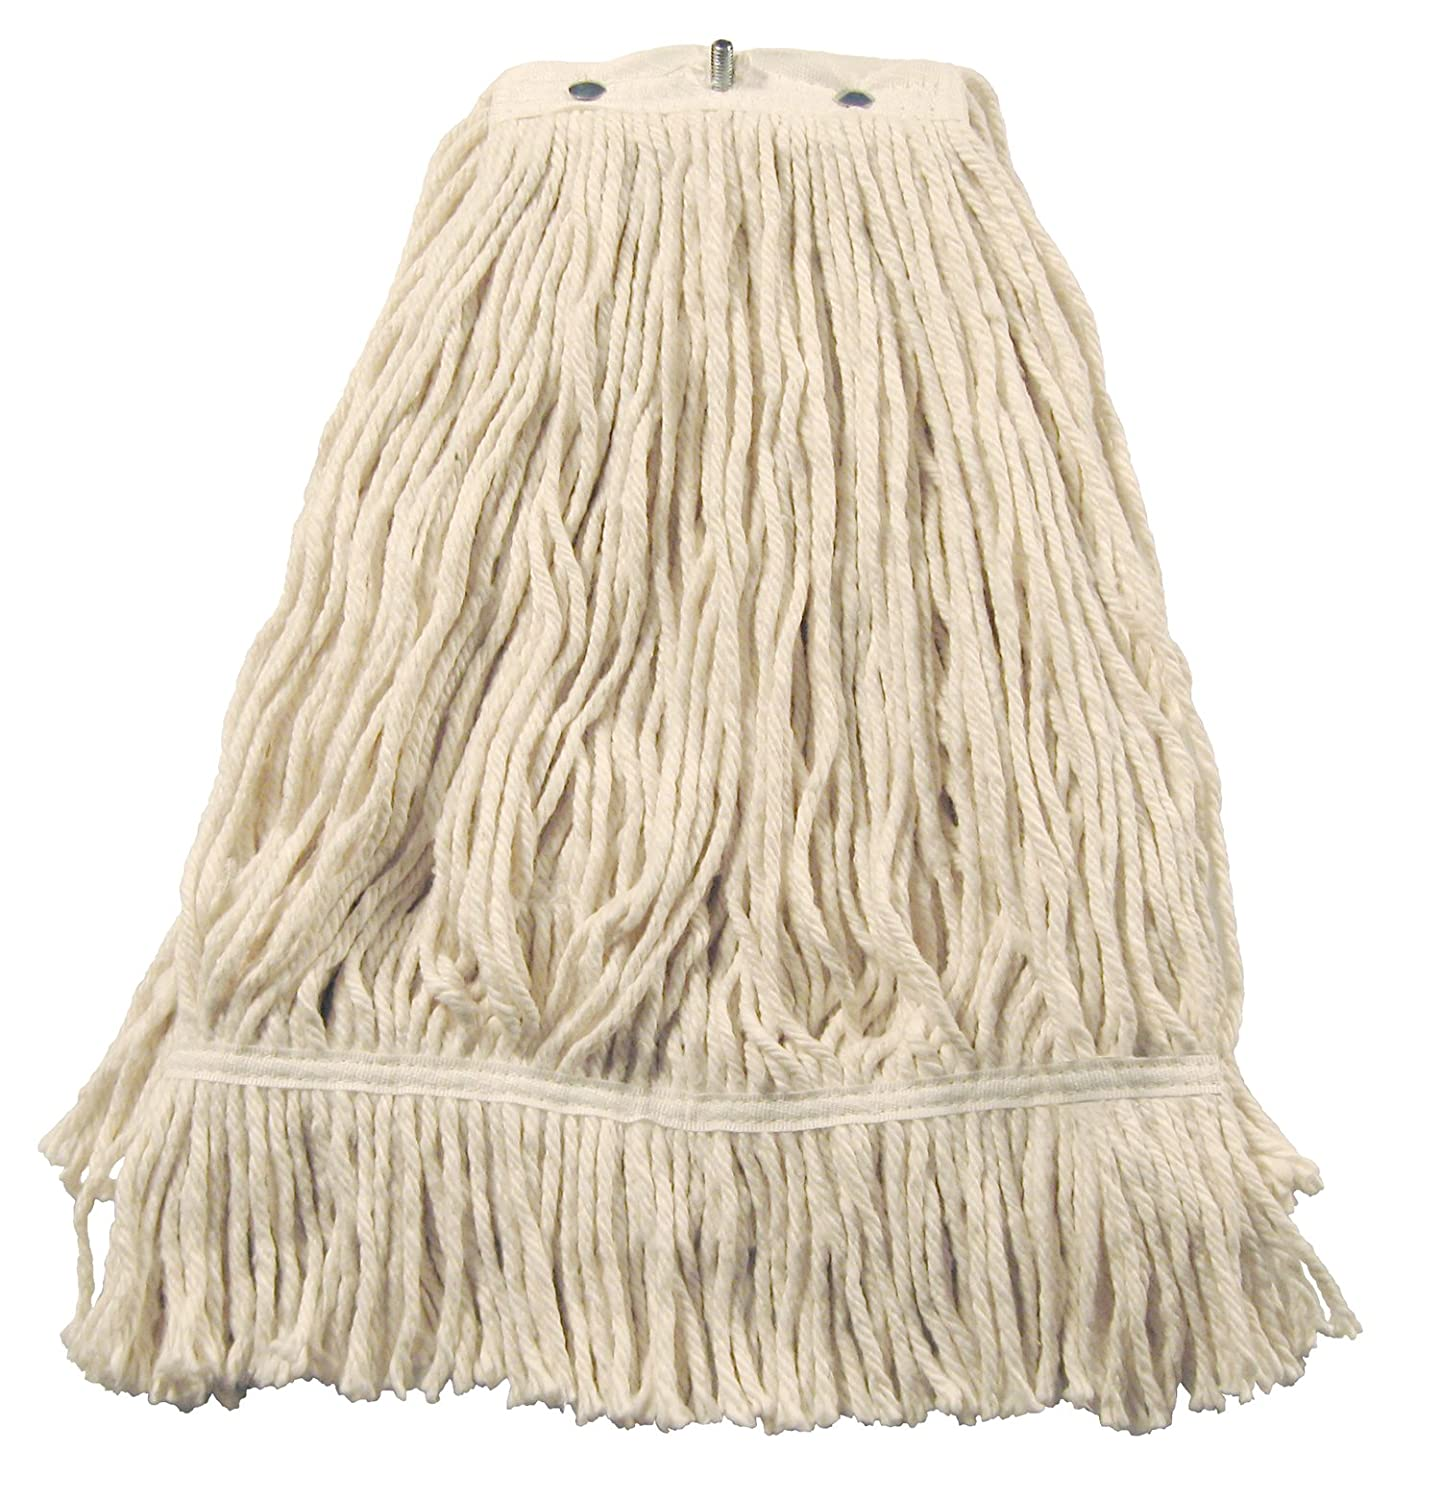 Go Go Blend Fan Mop Case of 12 Wilen A555324 Continental Commercial Products Natural 24-Ounce